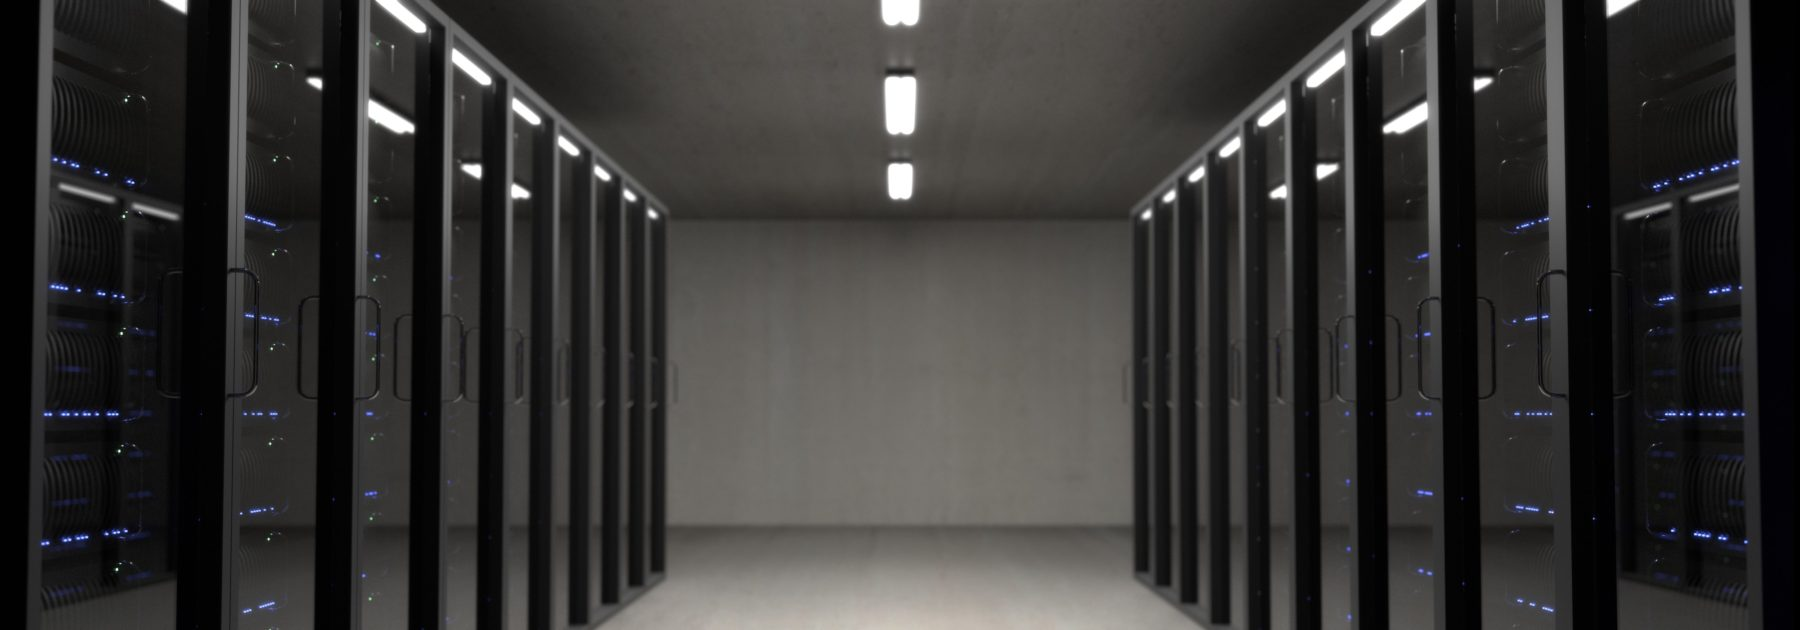 Photo of inside a data centre